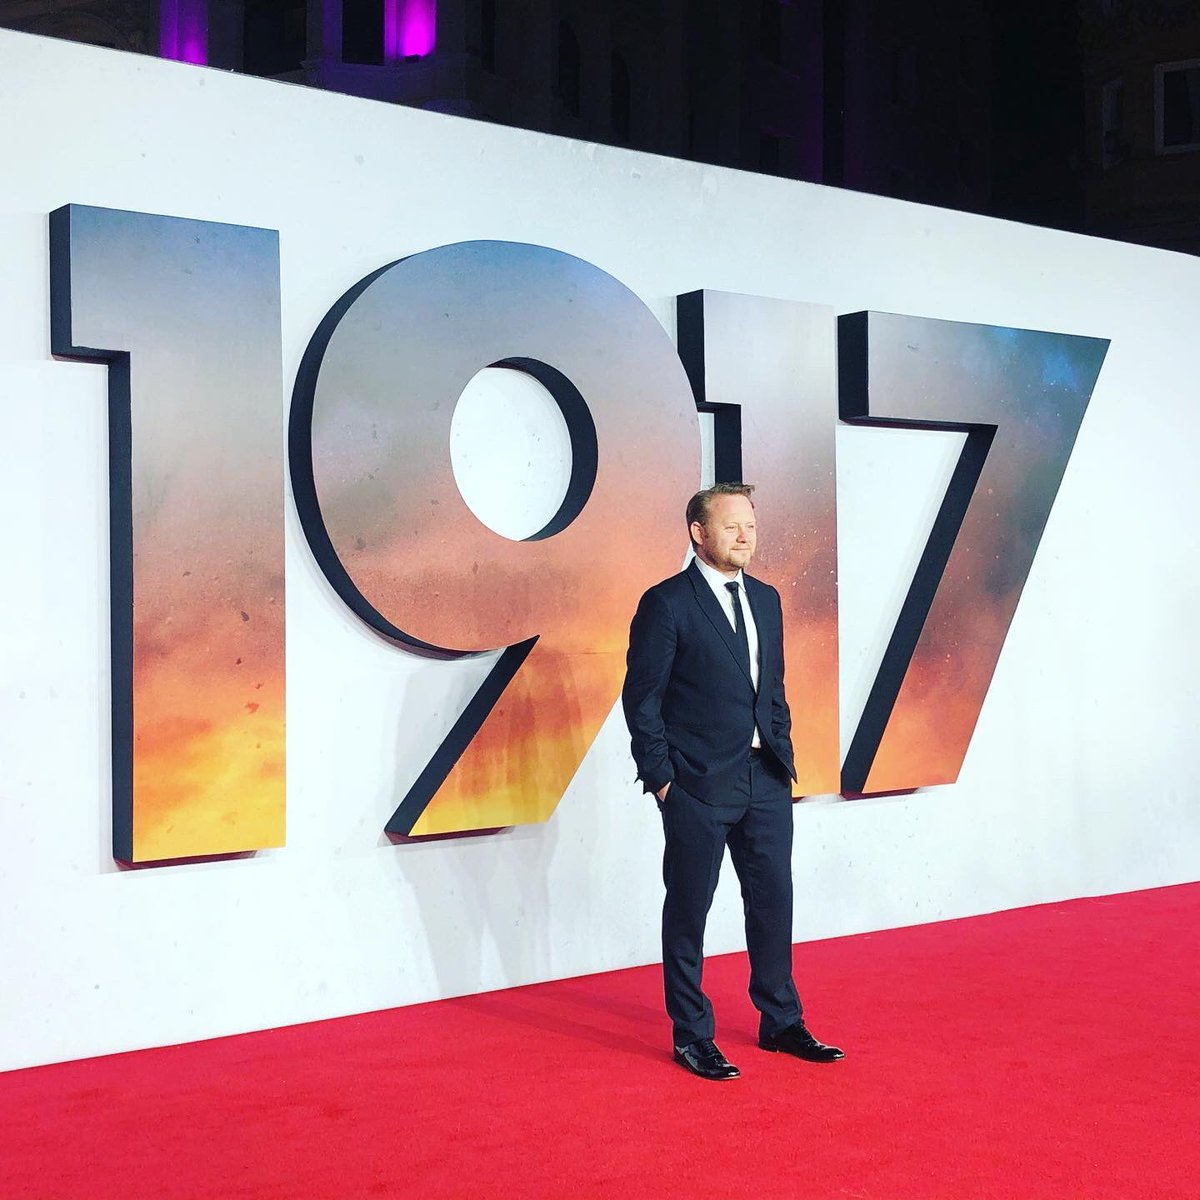 Popped along to the @1917FilmUK @1917 Royal Gala. Saw some mates and walked the #RedCarpet. This film is incredible!